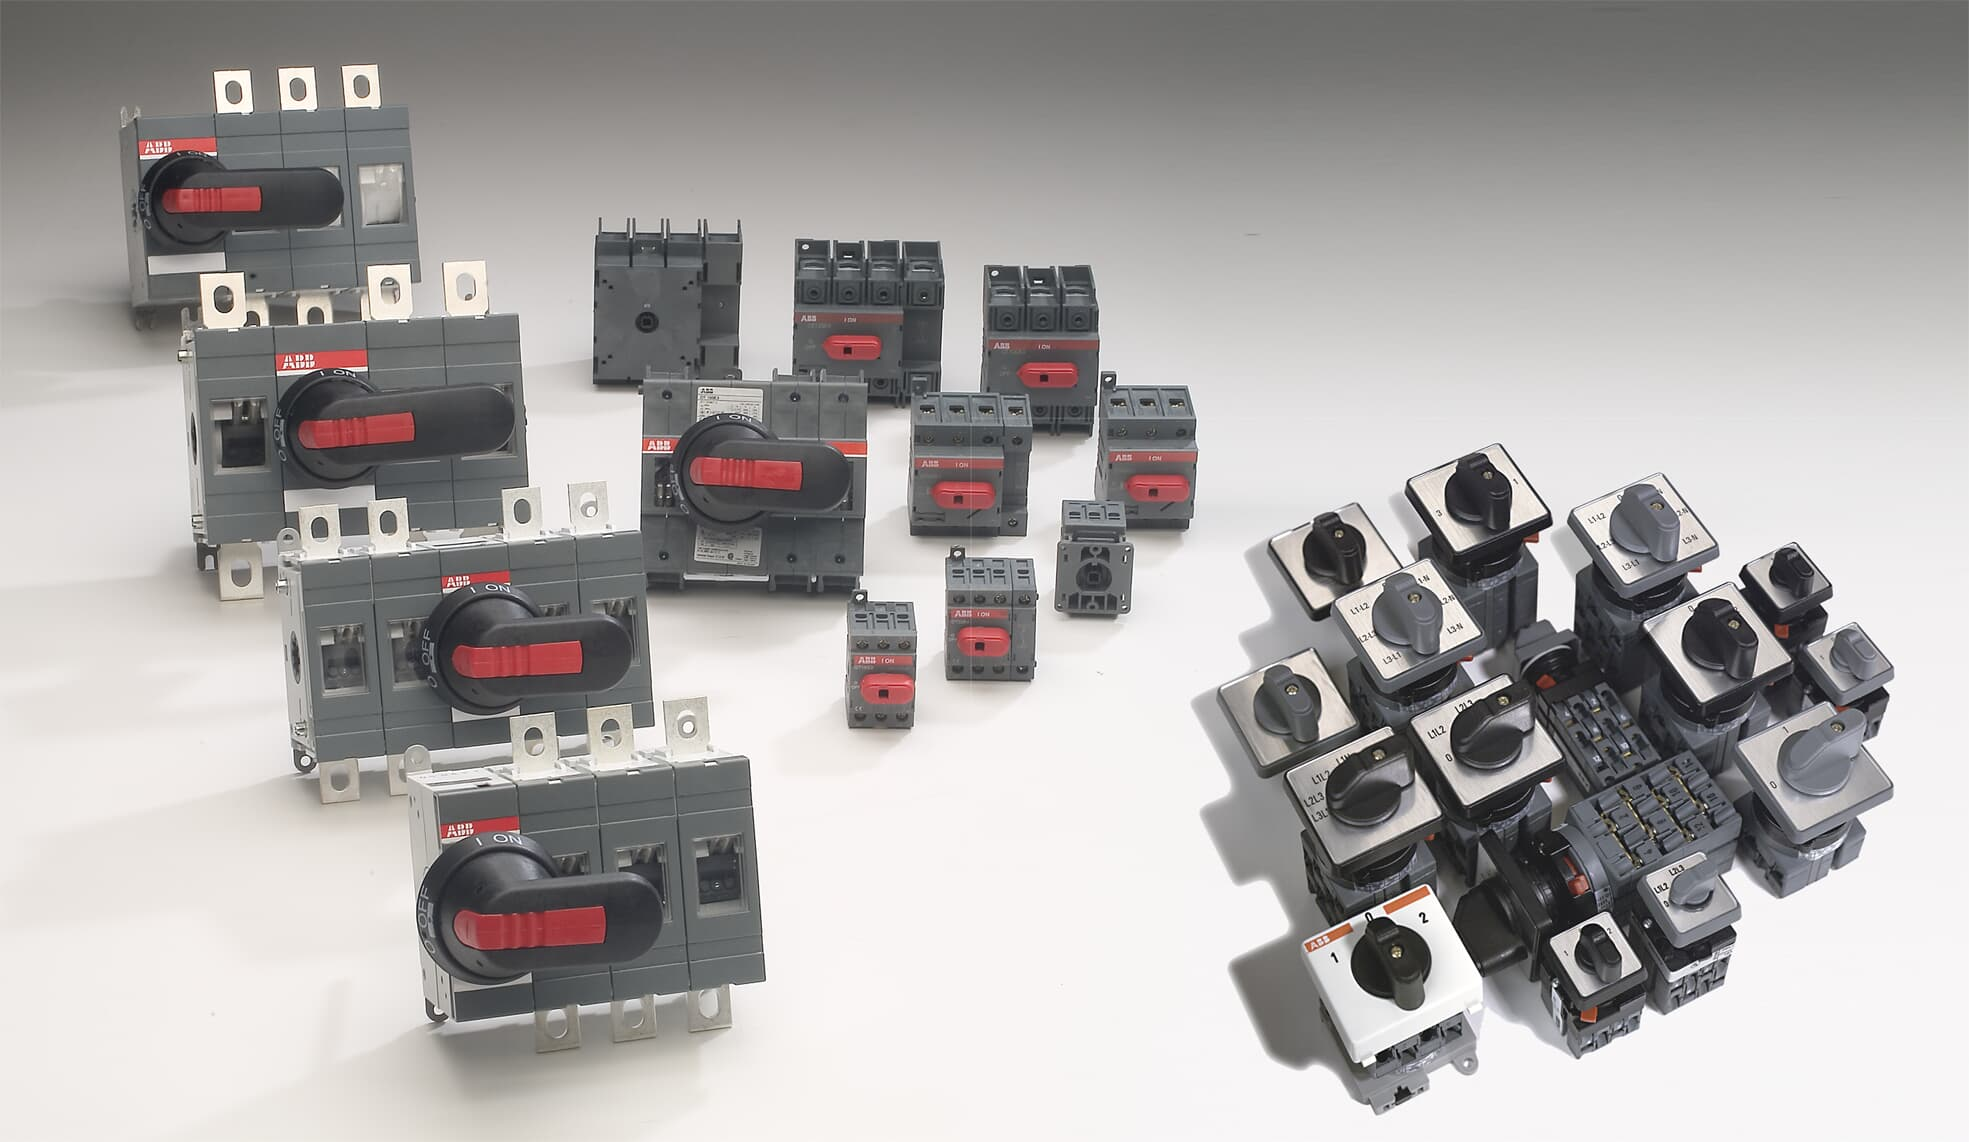 Switch-disconnectors and cam switches